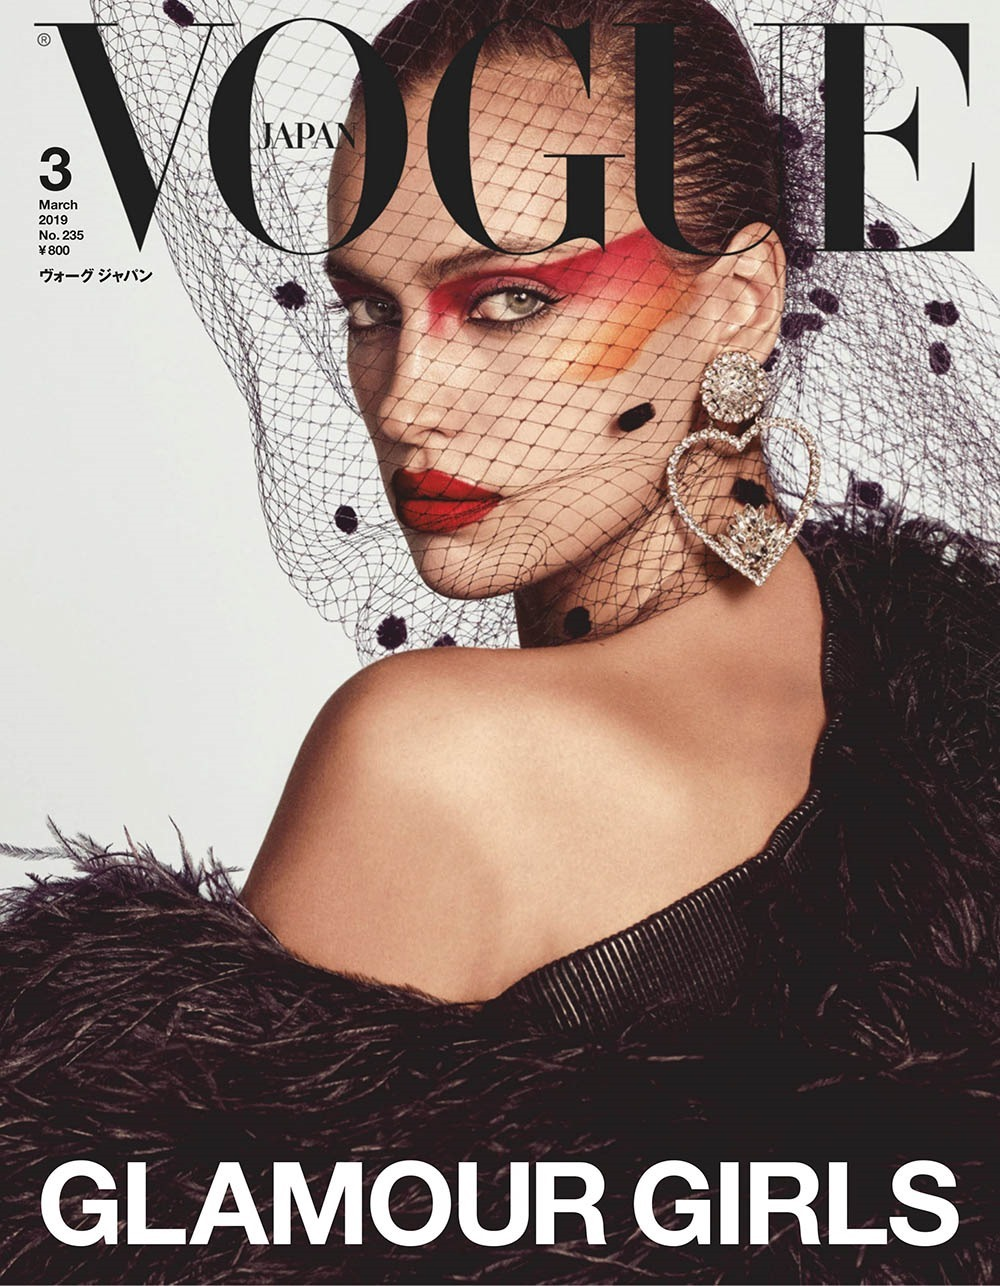 VOGUE-JAPAN-Dreams-of-Glamour-by-Luigi-Iango.-Anna-Dello-Russo-March-2019-www.imageamplified.co_-47.jpg